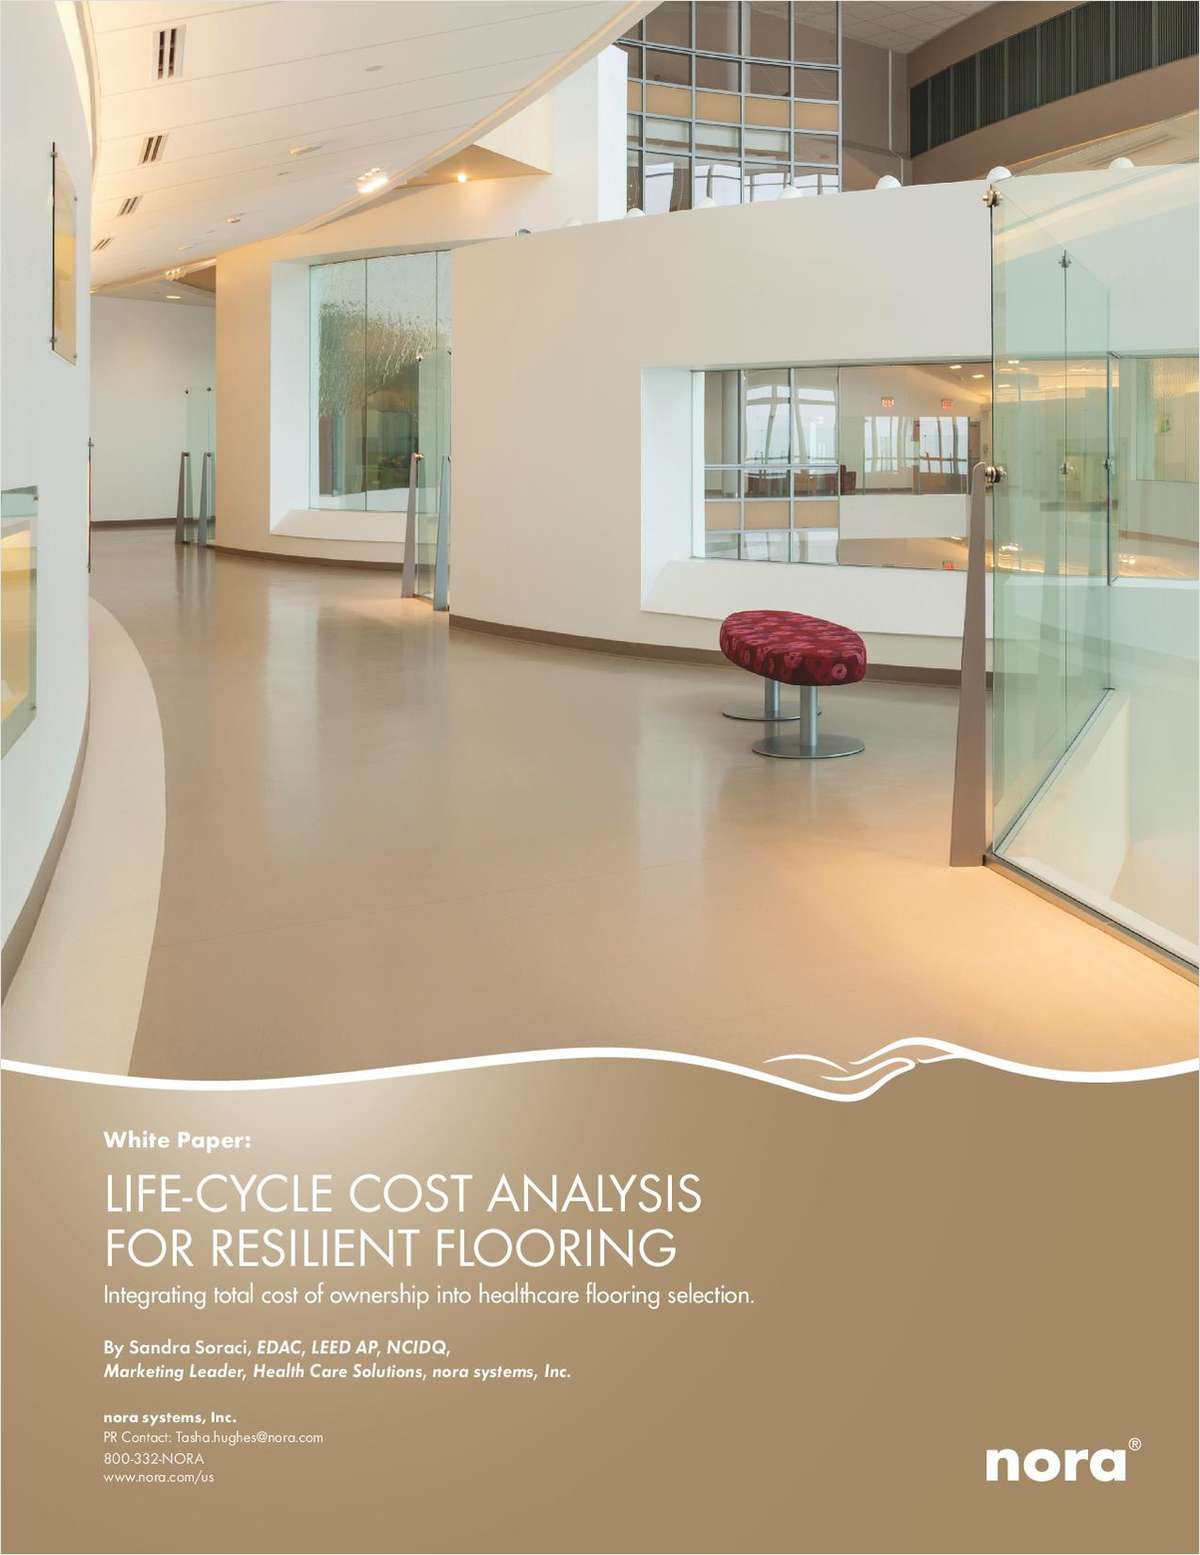 Life-Cycle Cost Analysis for Resilient Flooring